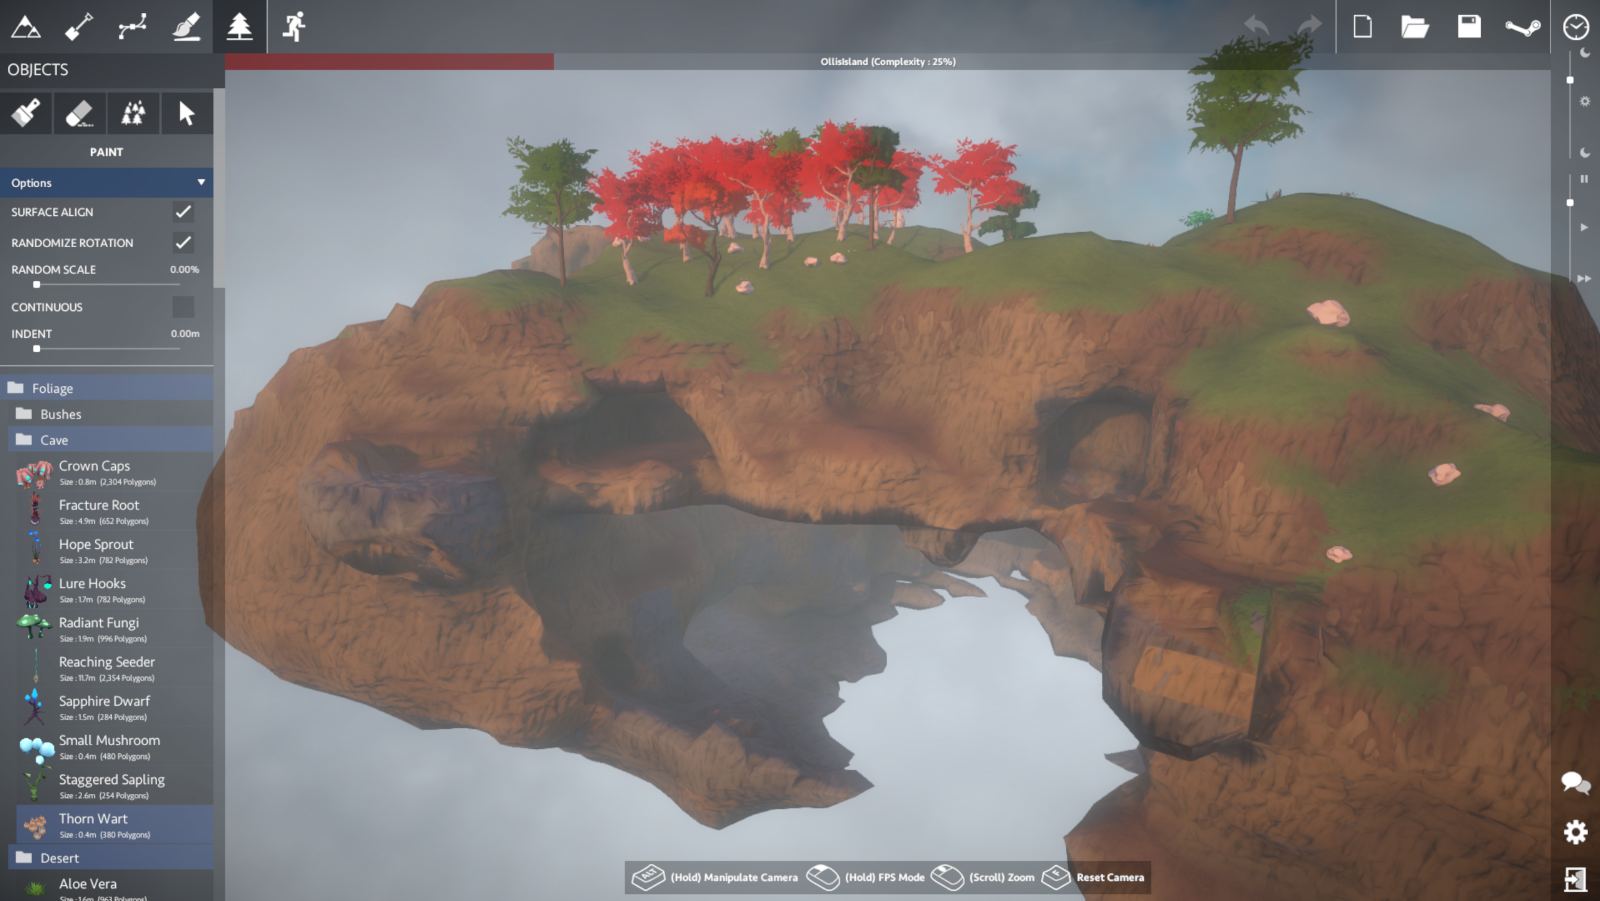 Free Island Creator Tool For Worlds Adrift Unveiled